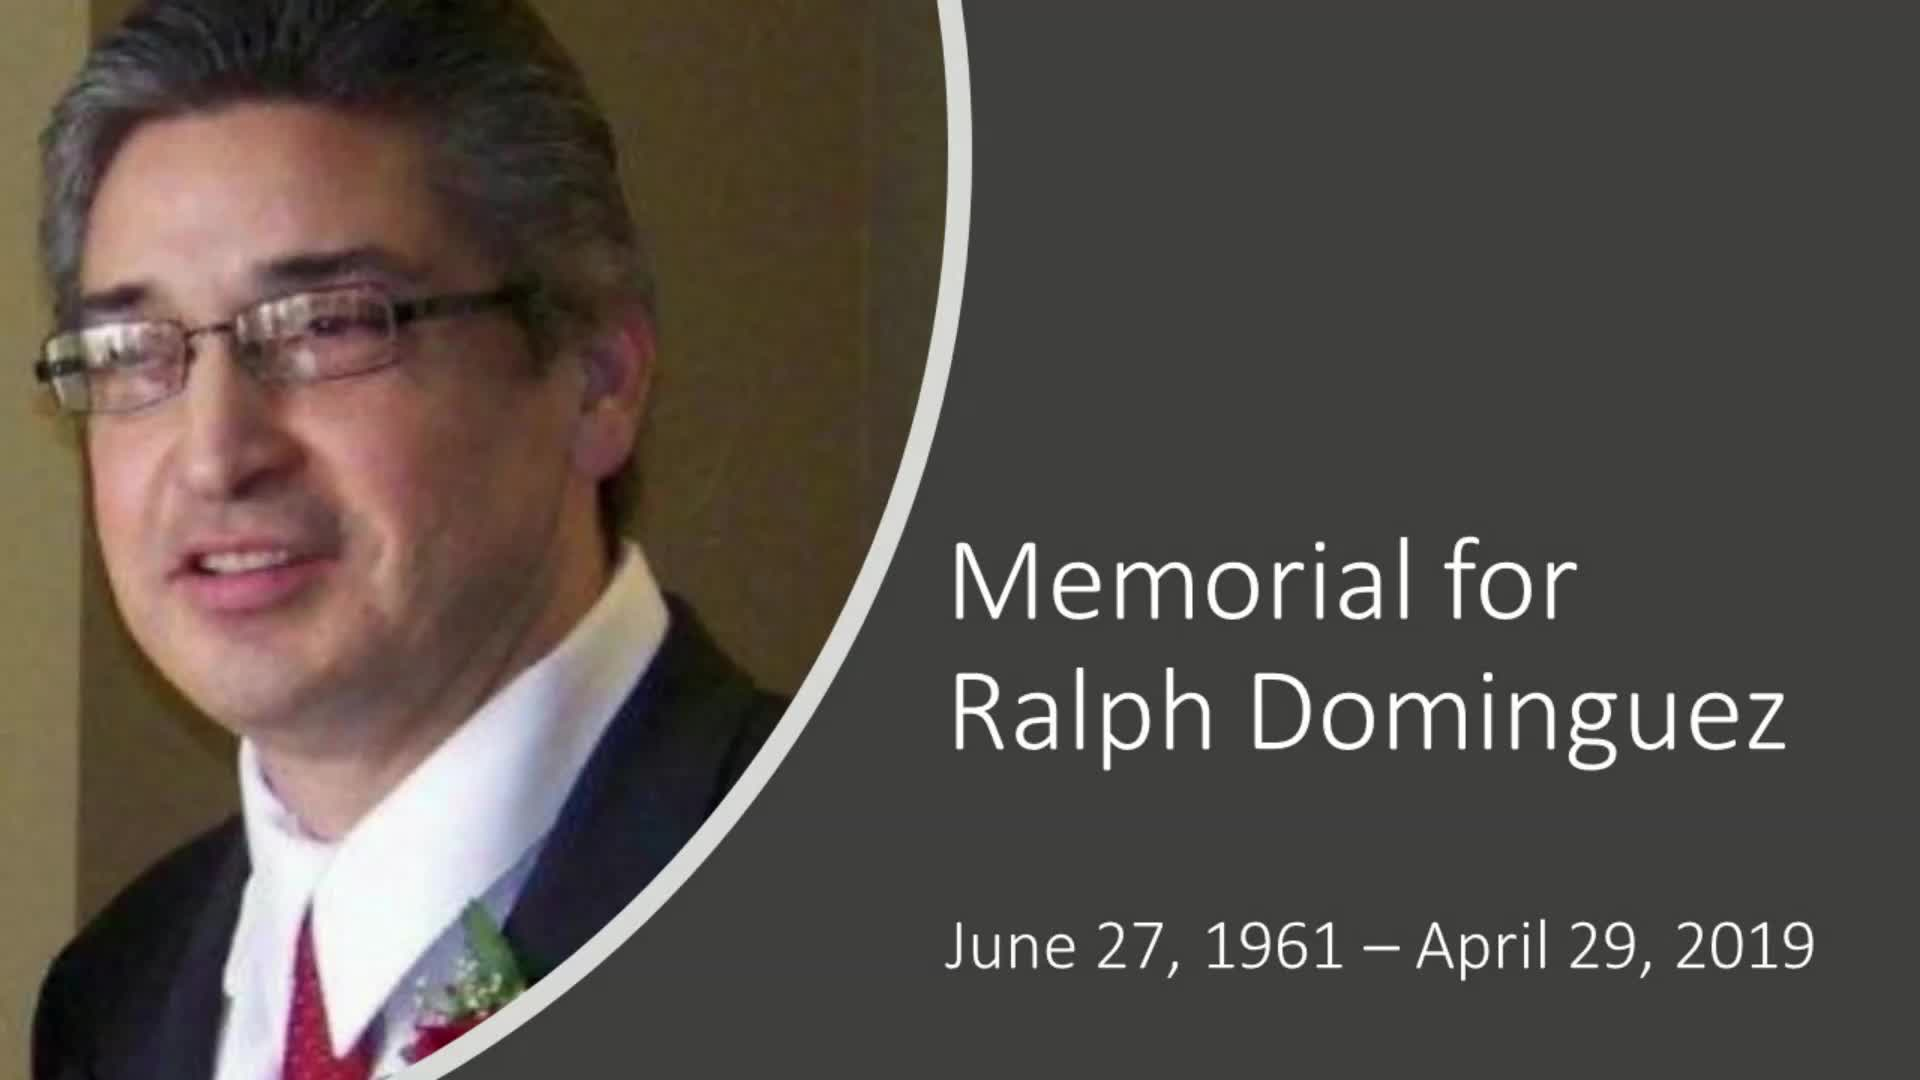 Memorial for Ralph Dominguez